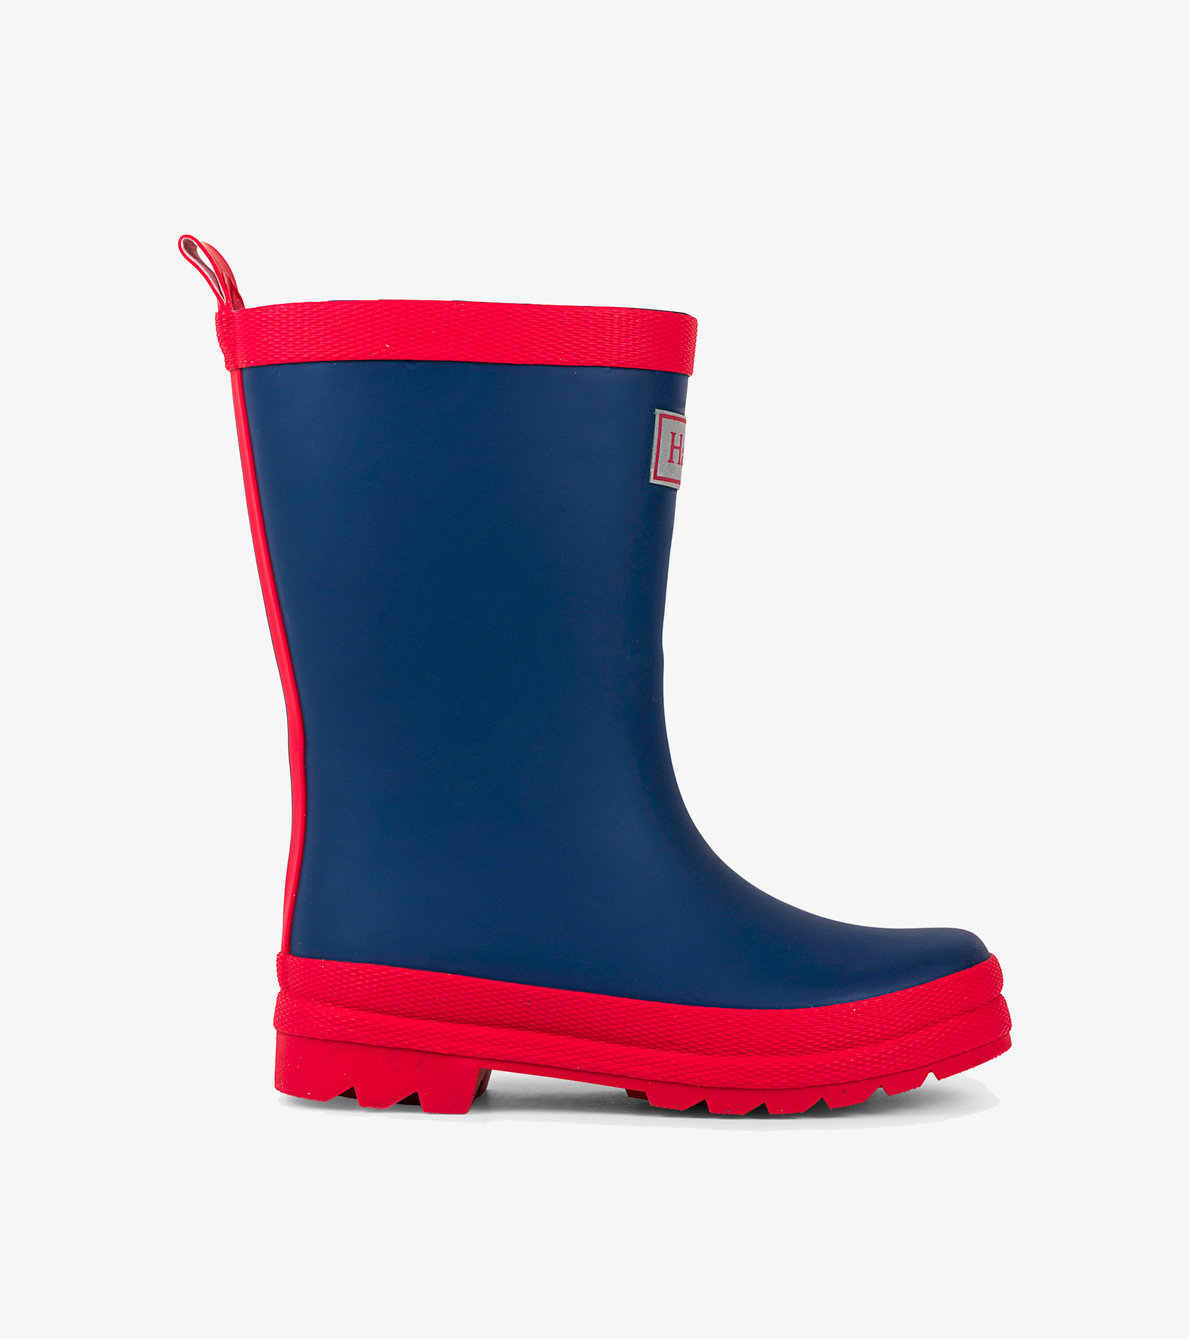 View larger image of Navy & Red Matte Rain Boots